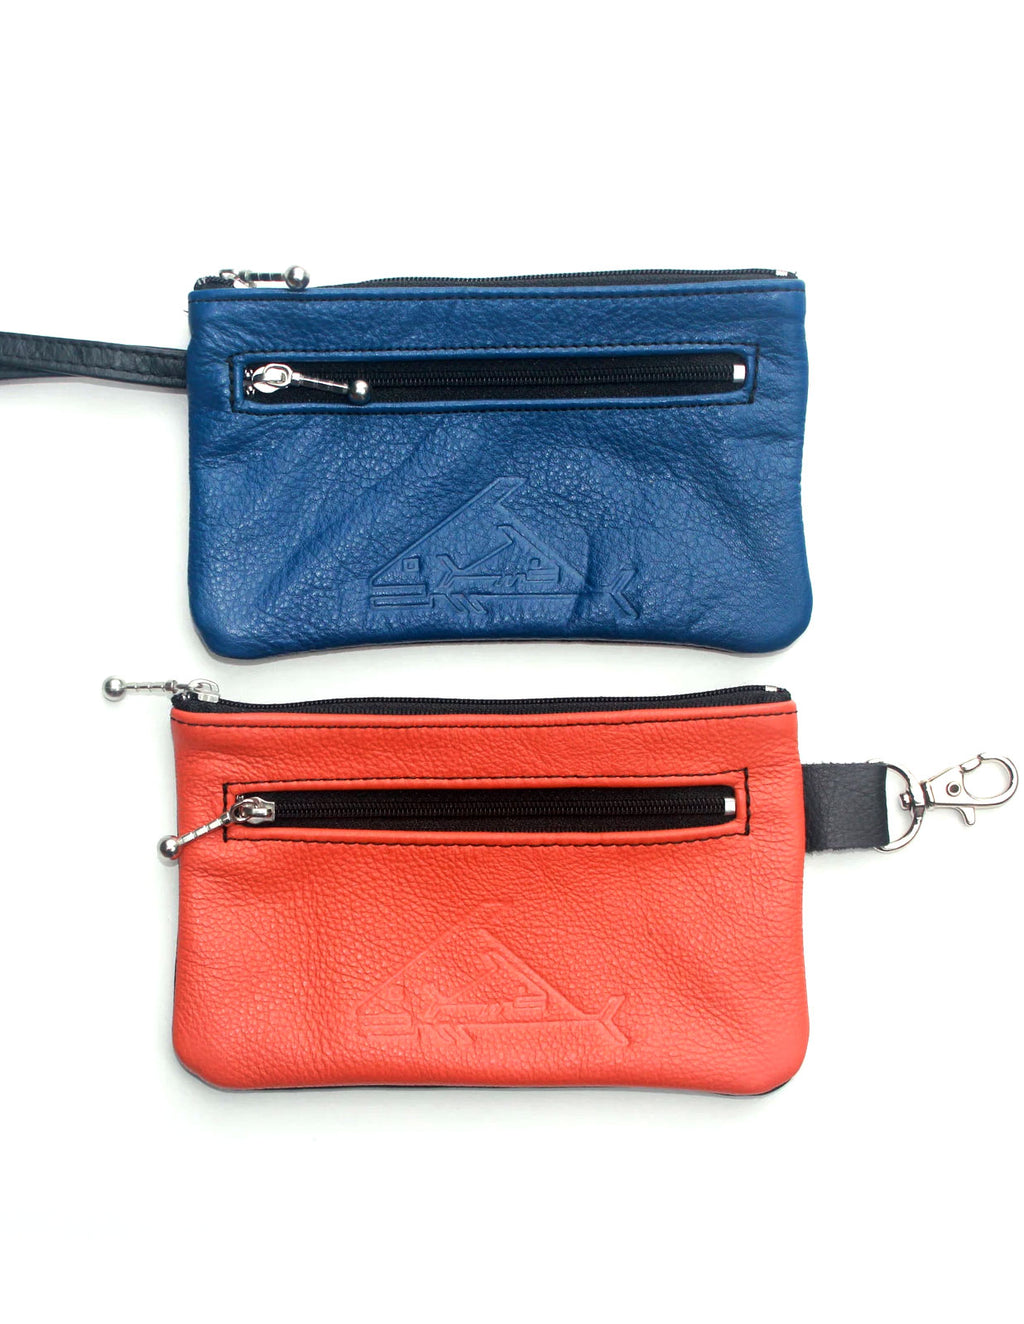 "6"" Wristlet or Wallet Bag with Snap Hook - Indian Summer's designer leather purses"